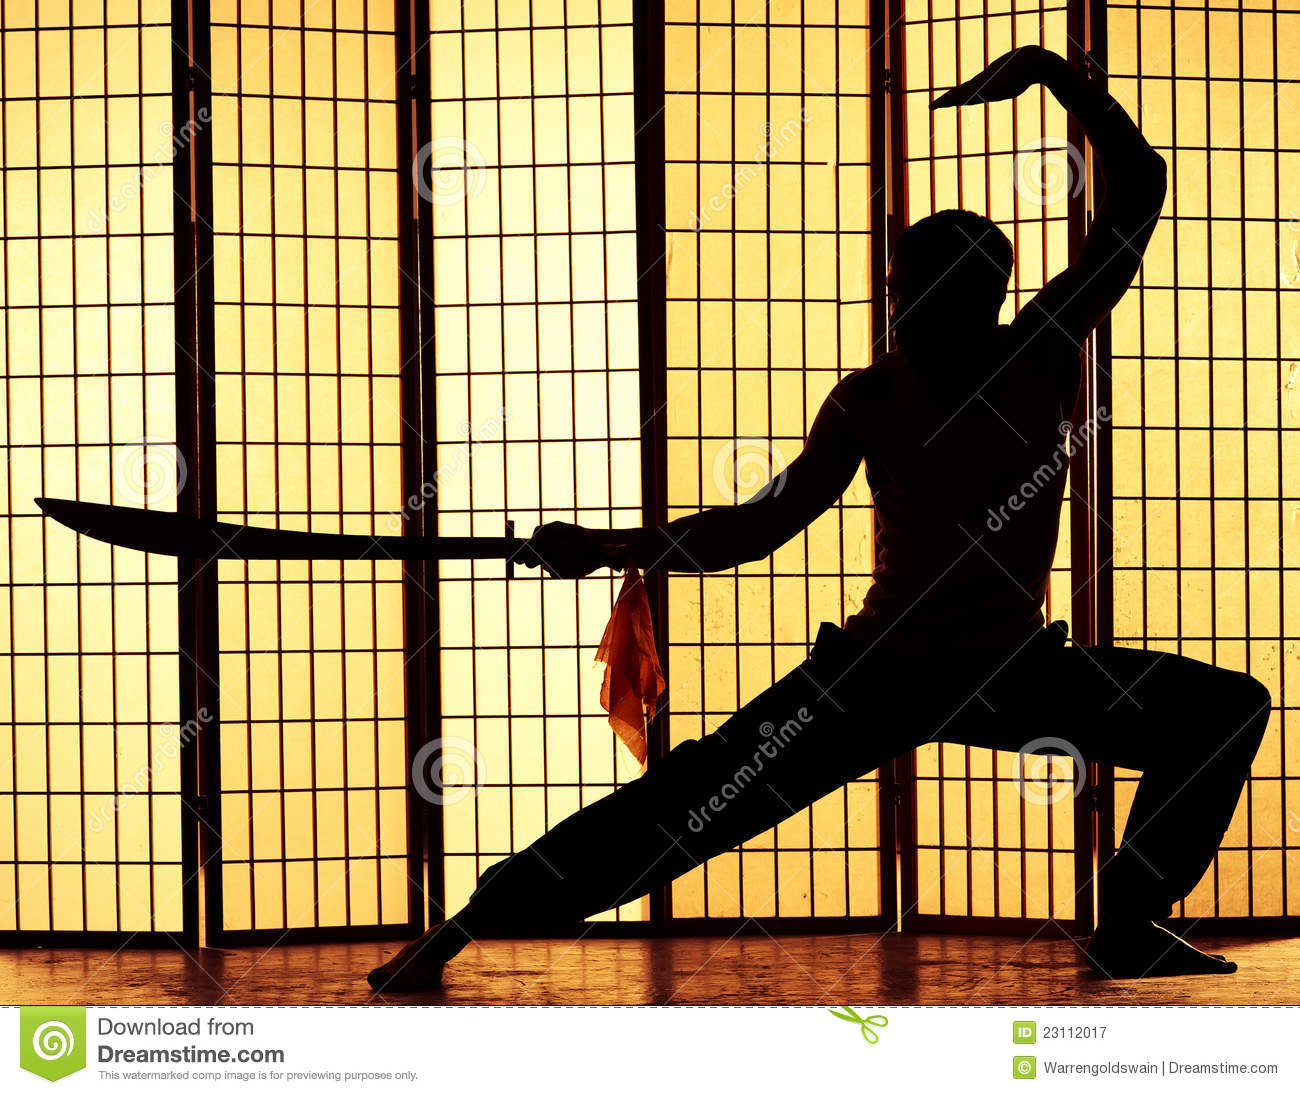 Swordsman Silhouette Royalty Free Stock Images.